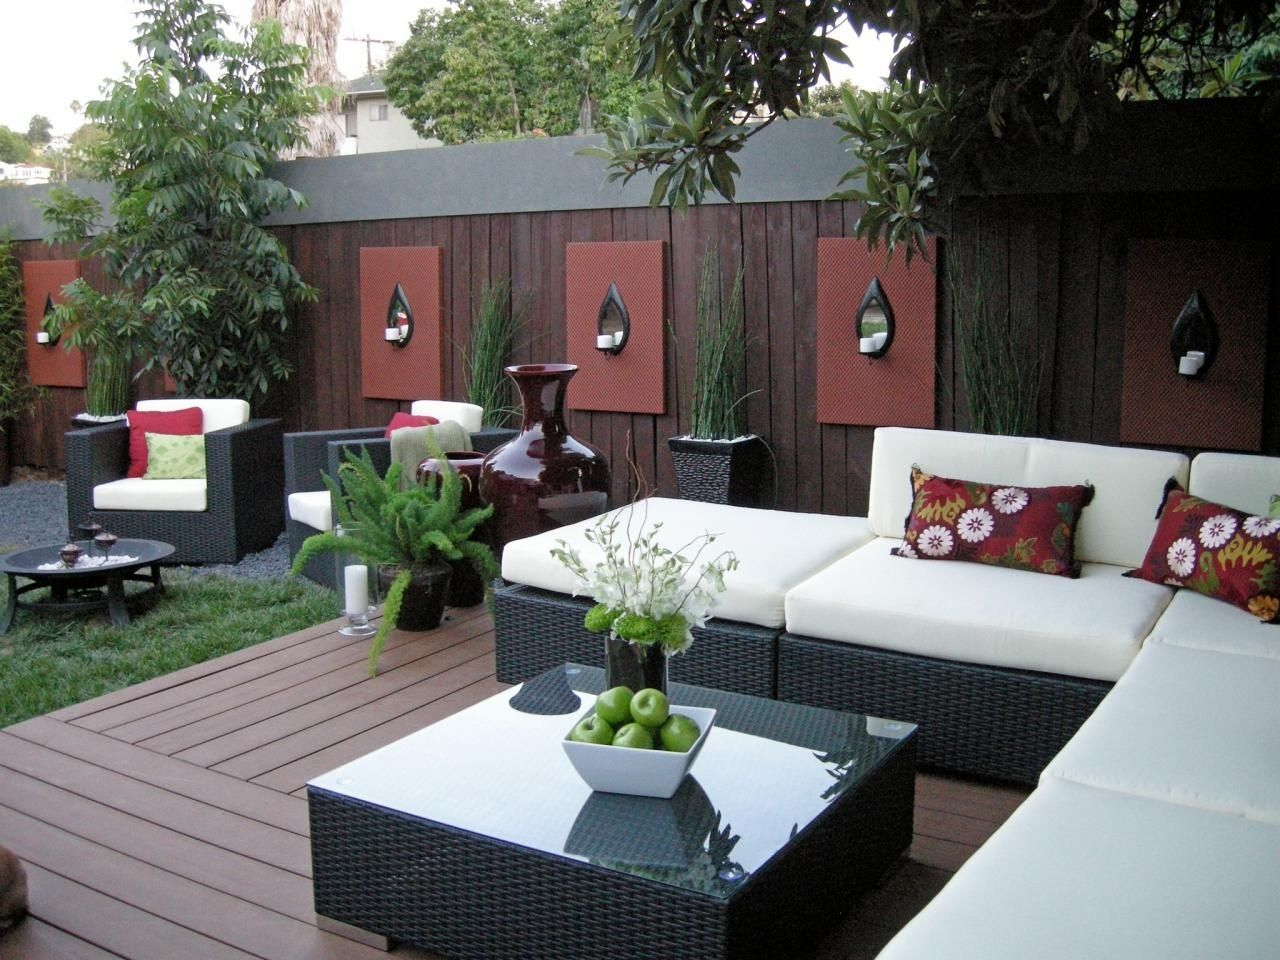 Houzz Outdoor Furniture   Lowes Paint Colors Interior Check More At  Http://www.mtbasics.com/houzz Outdoor Furniture/